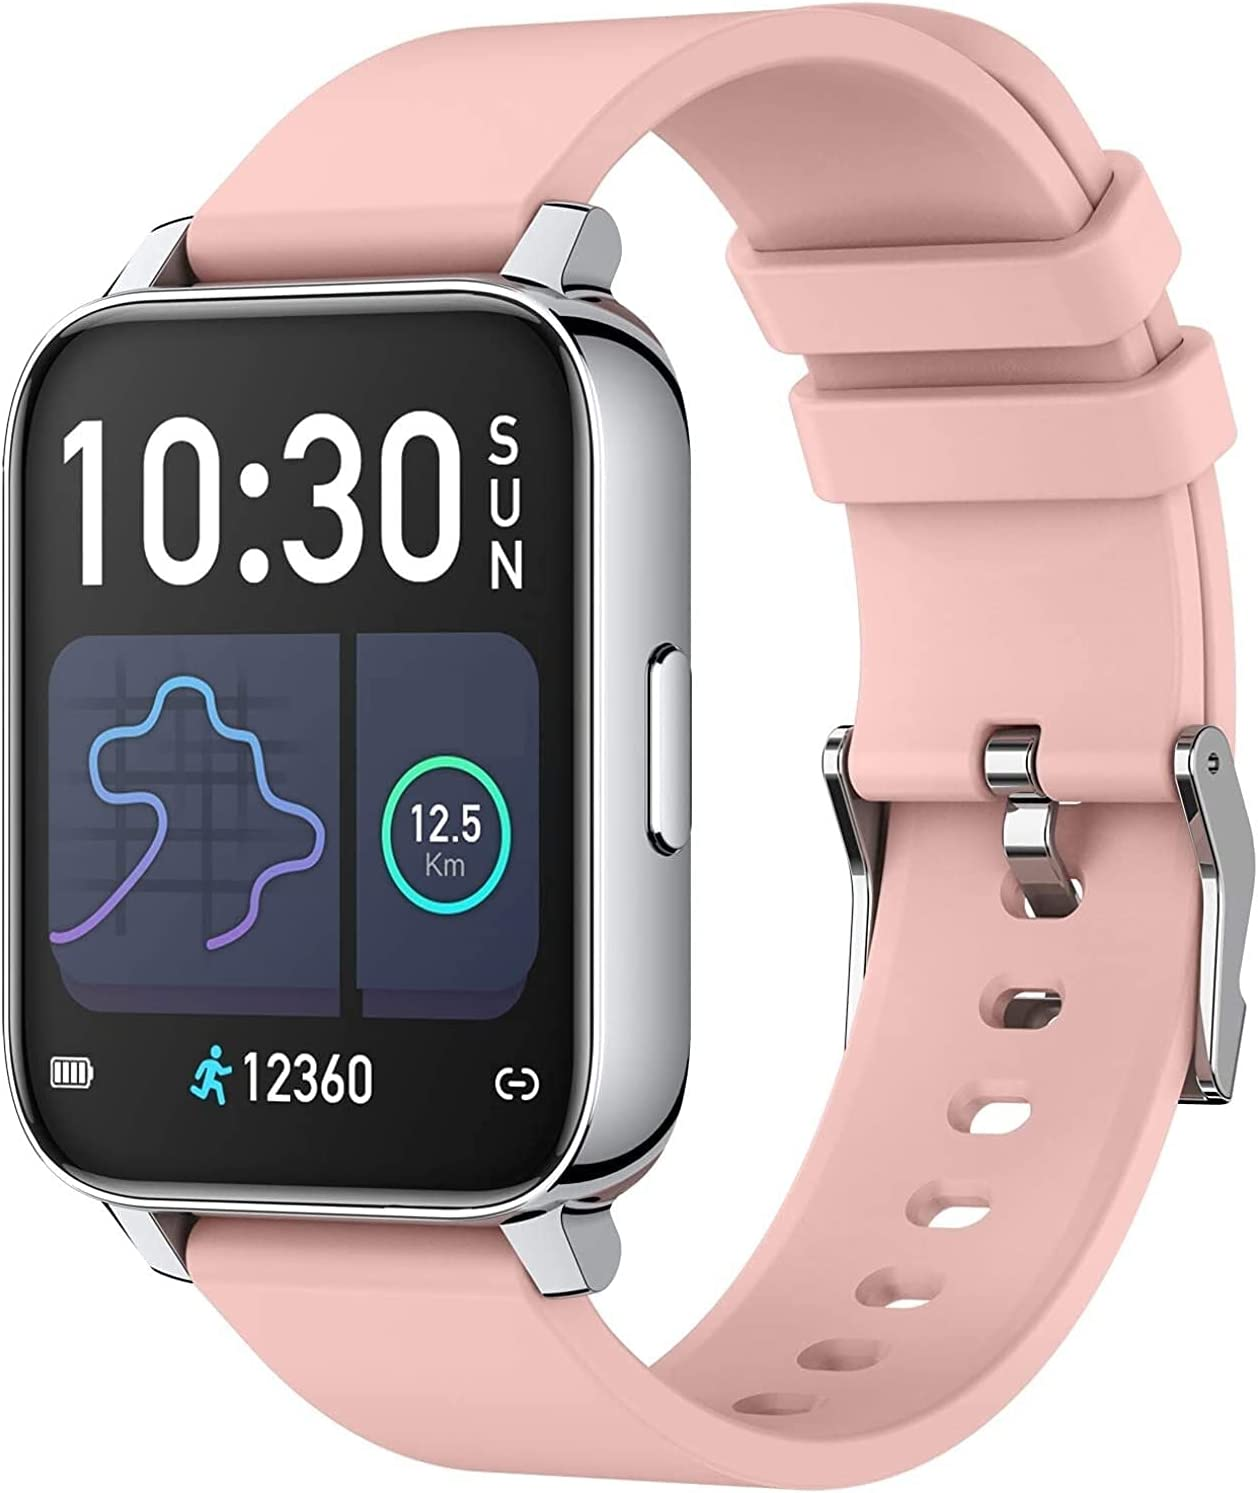 NCHEOI Sports Smart Watches for Women Rate Men Heart B Pedometer Mesa Mall Sale